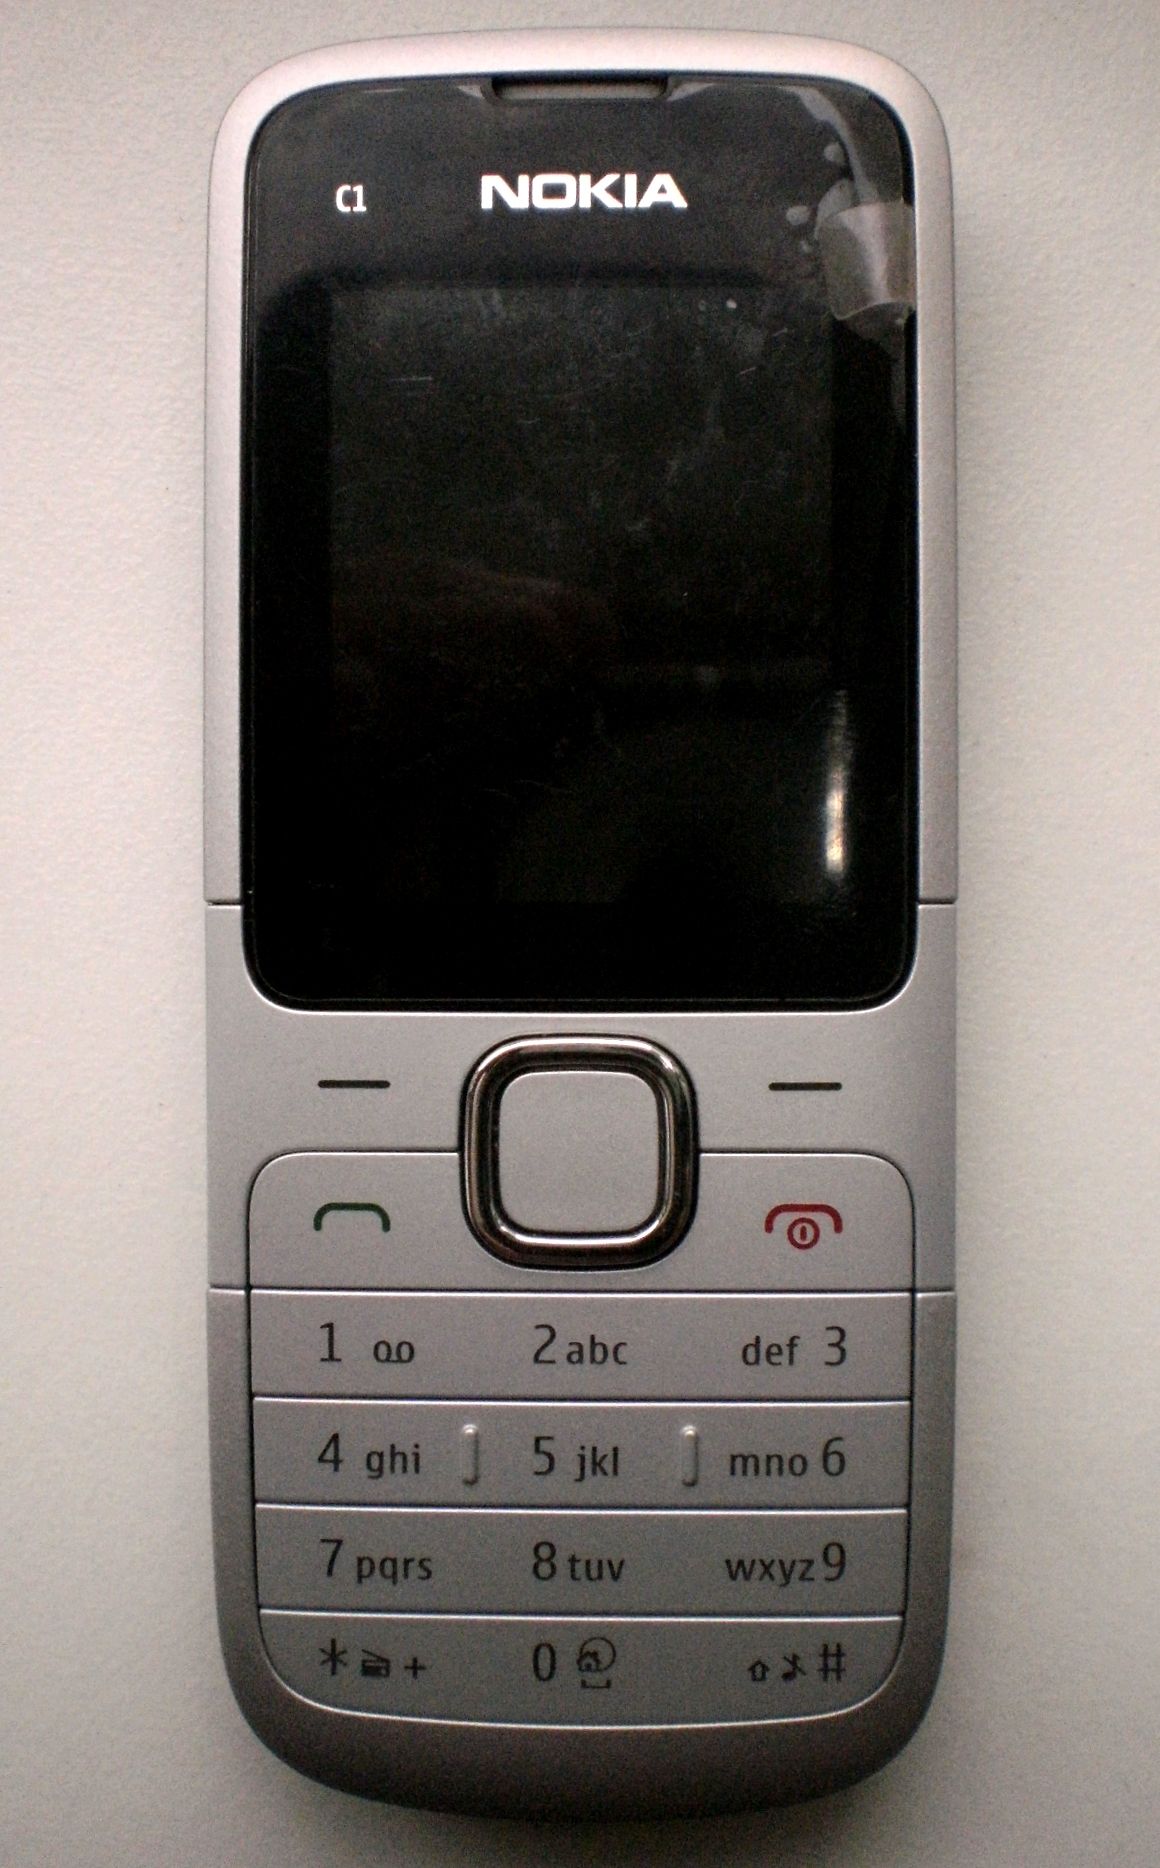 Nokia C1 01 Wikipedia Circuit Diagram 1100